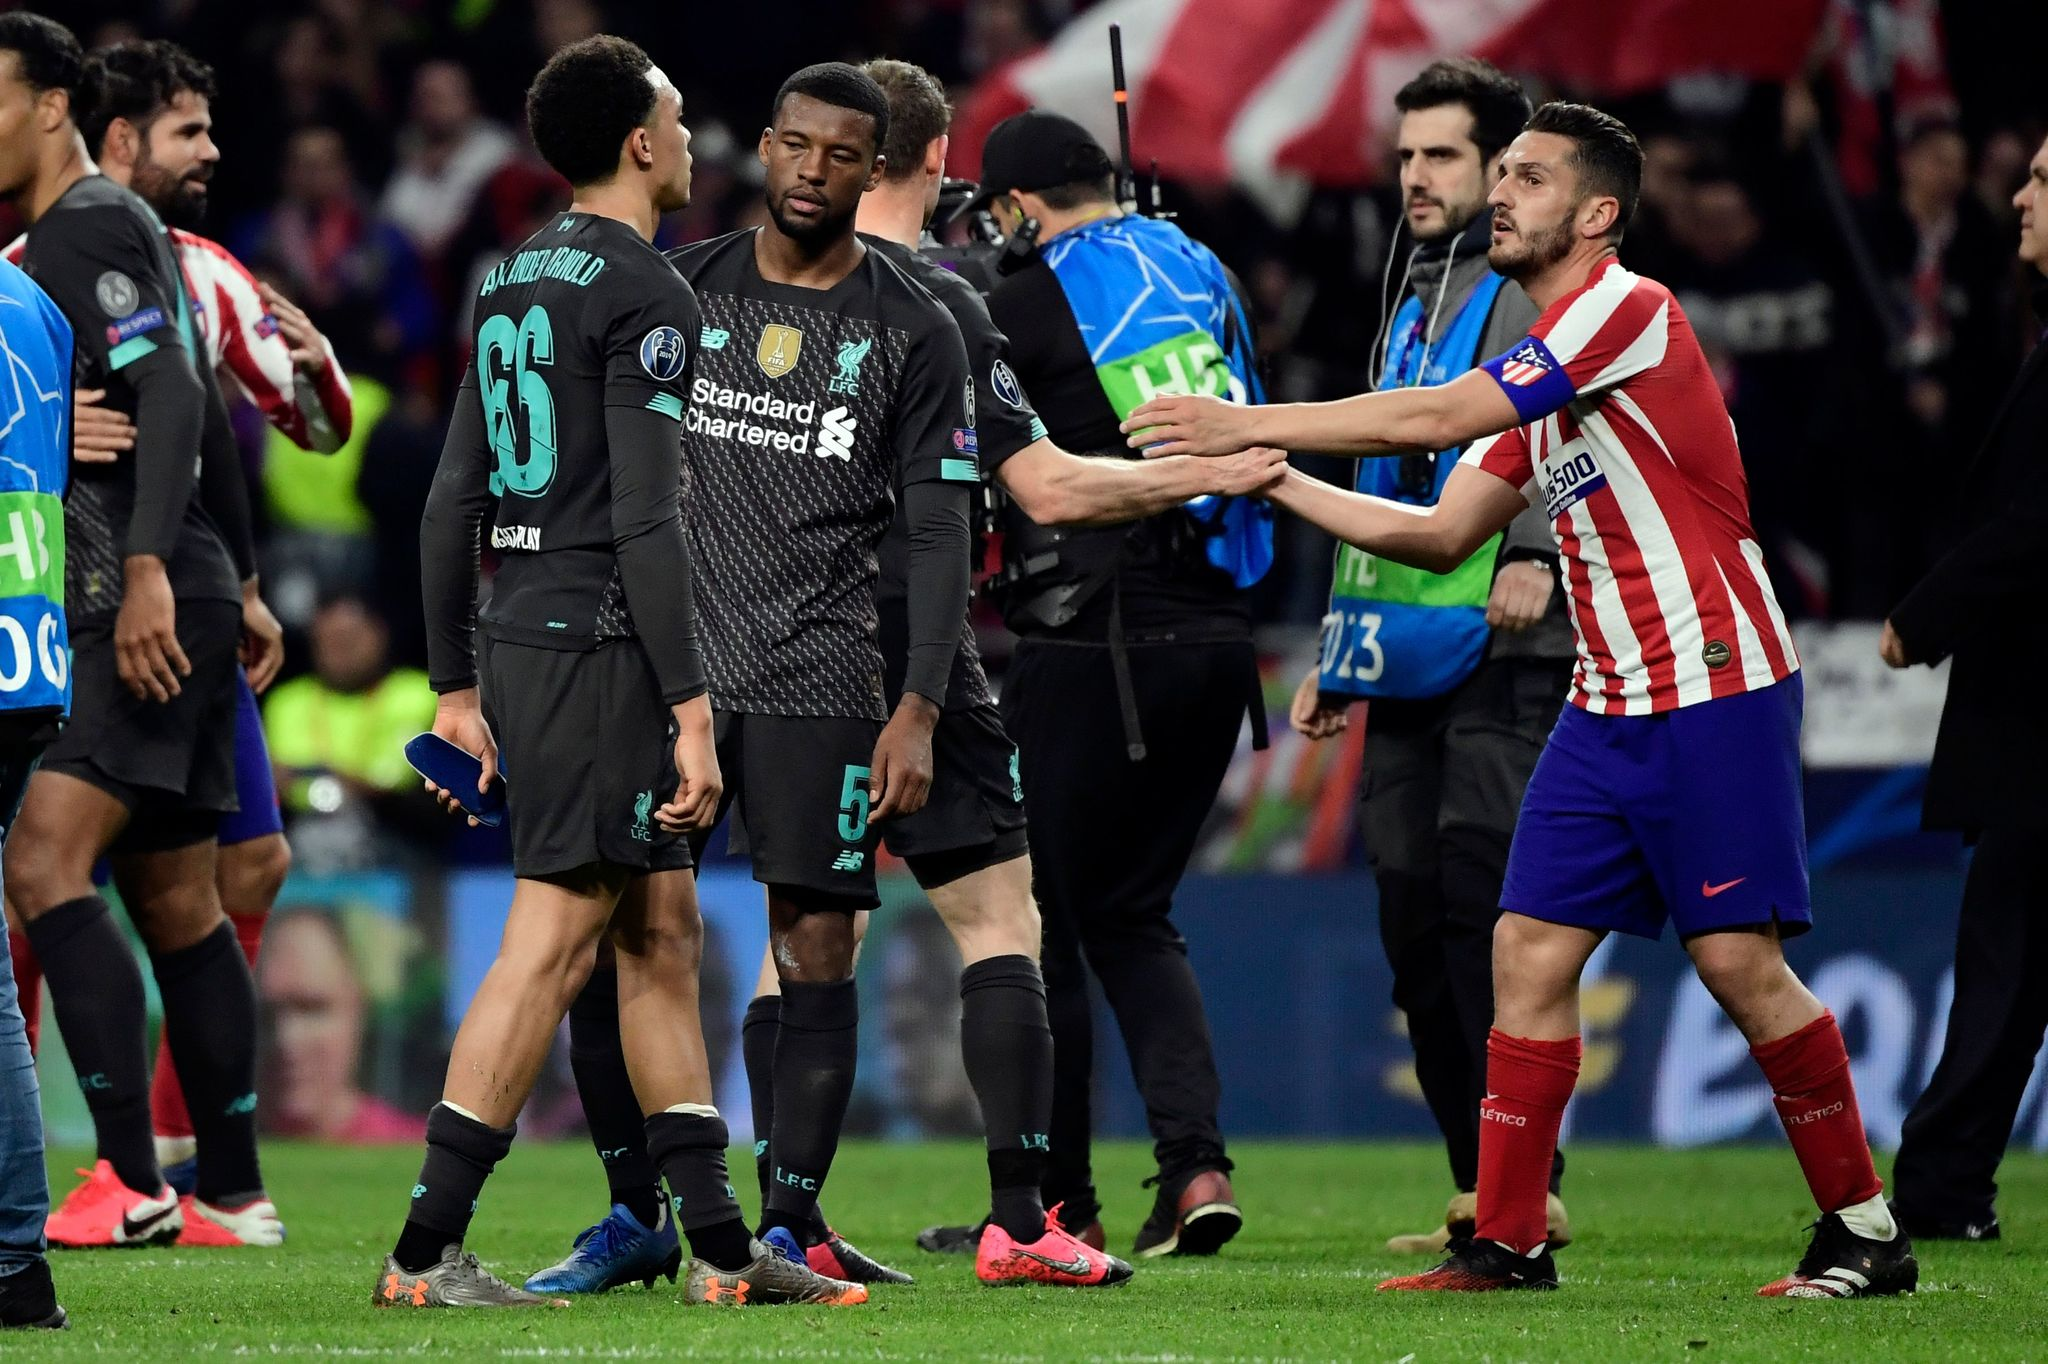 lt;HIT gt;Atletico lt;/HIT gt; Madrids Spanish midfielder Koke (R) is congratulated by Liverpools players at the end of the UEFA Champions League, round of 16, first leg football match between Club lt;HIT gt;Atletico lt;/HIT gt; de Madrid and Liverpool FC at the Wanda Metropolitano stadium in Madrid on February 18, 2020. (Photo by JAVIER SORIANO / AFP)